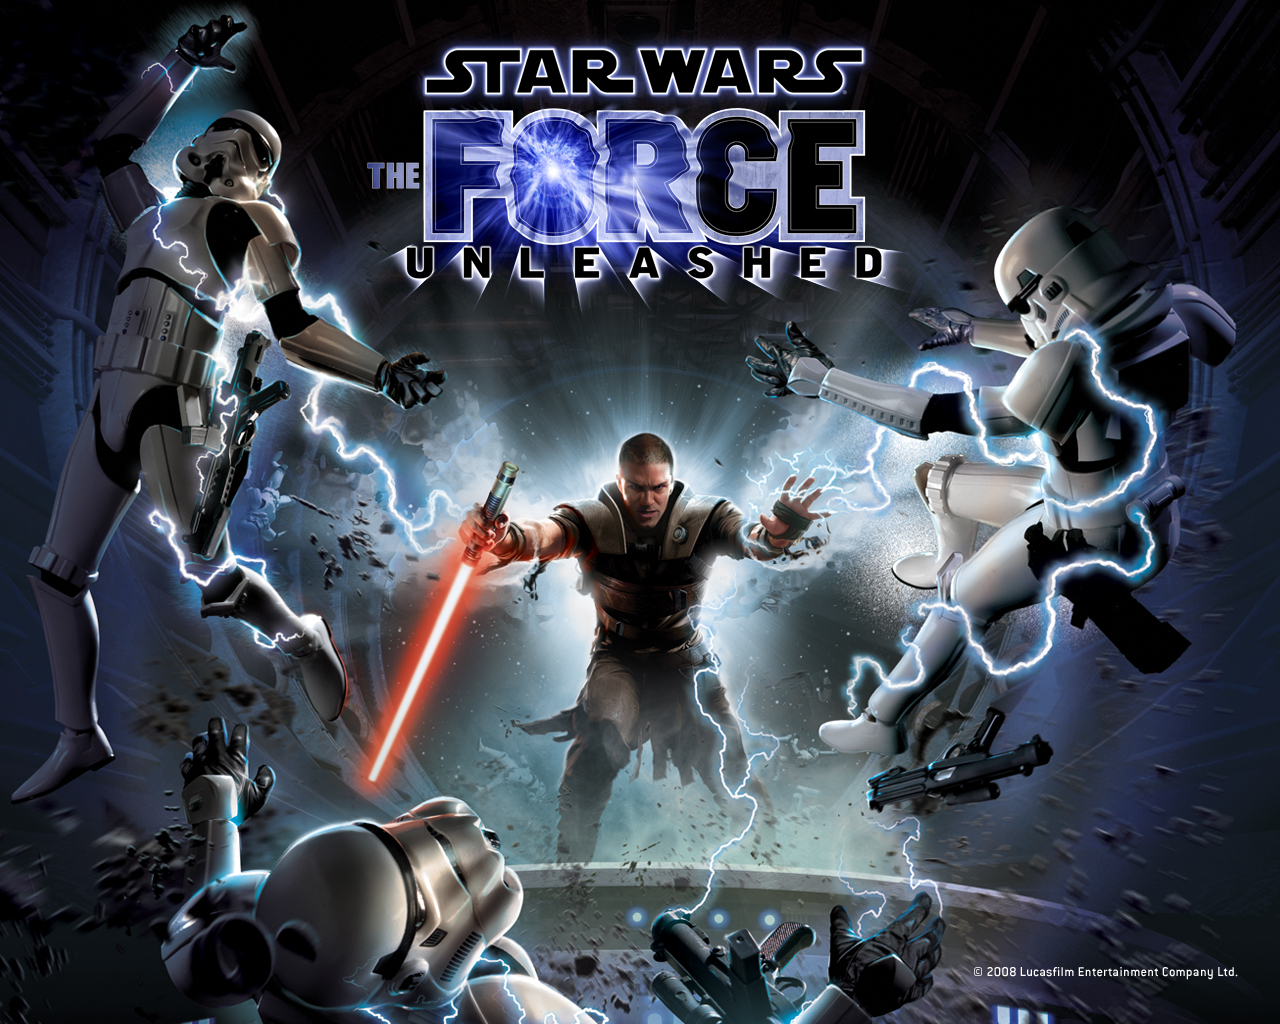 Star_Wars_The_Force_Unleashed_Storm.zip